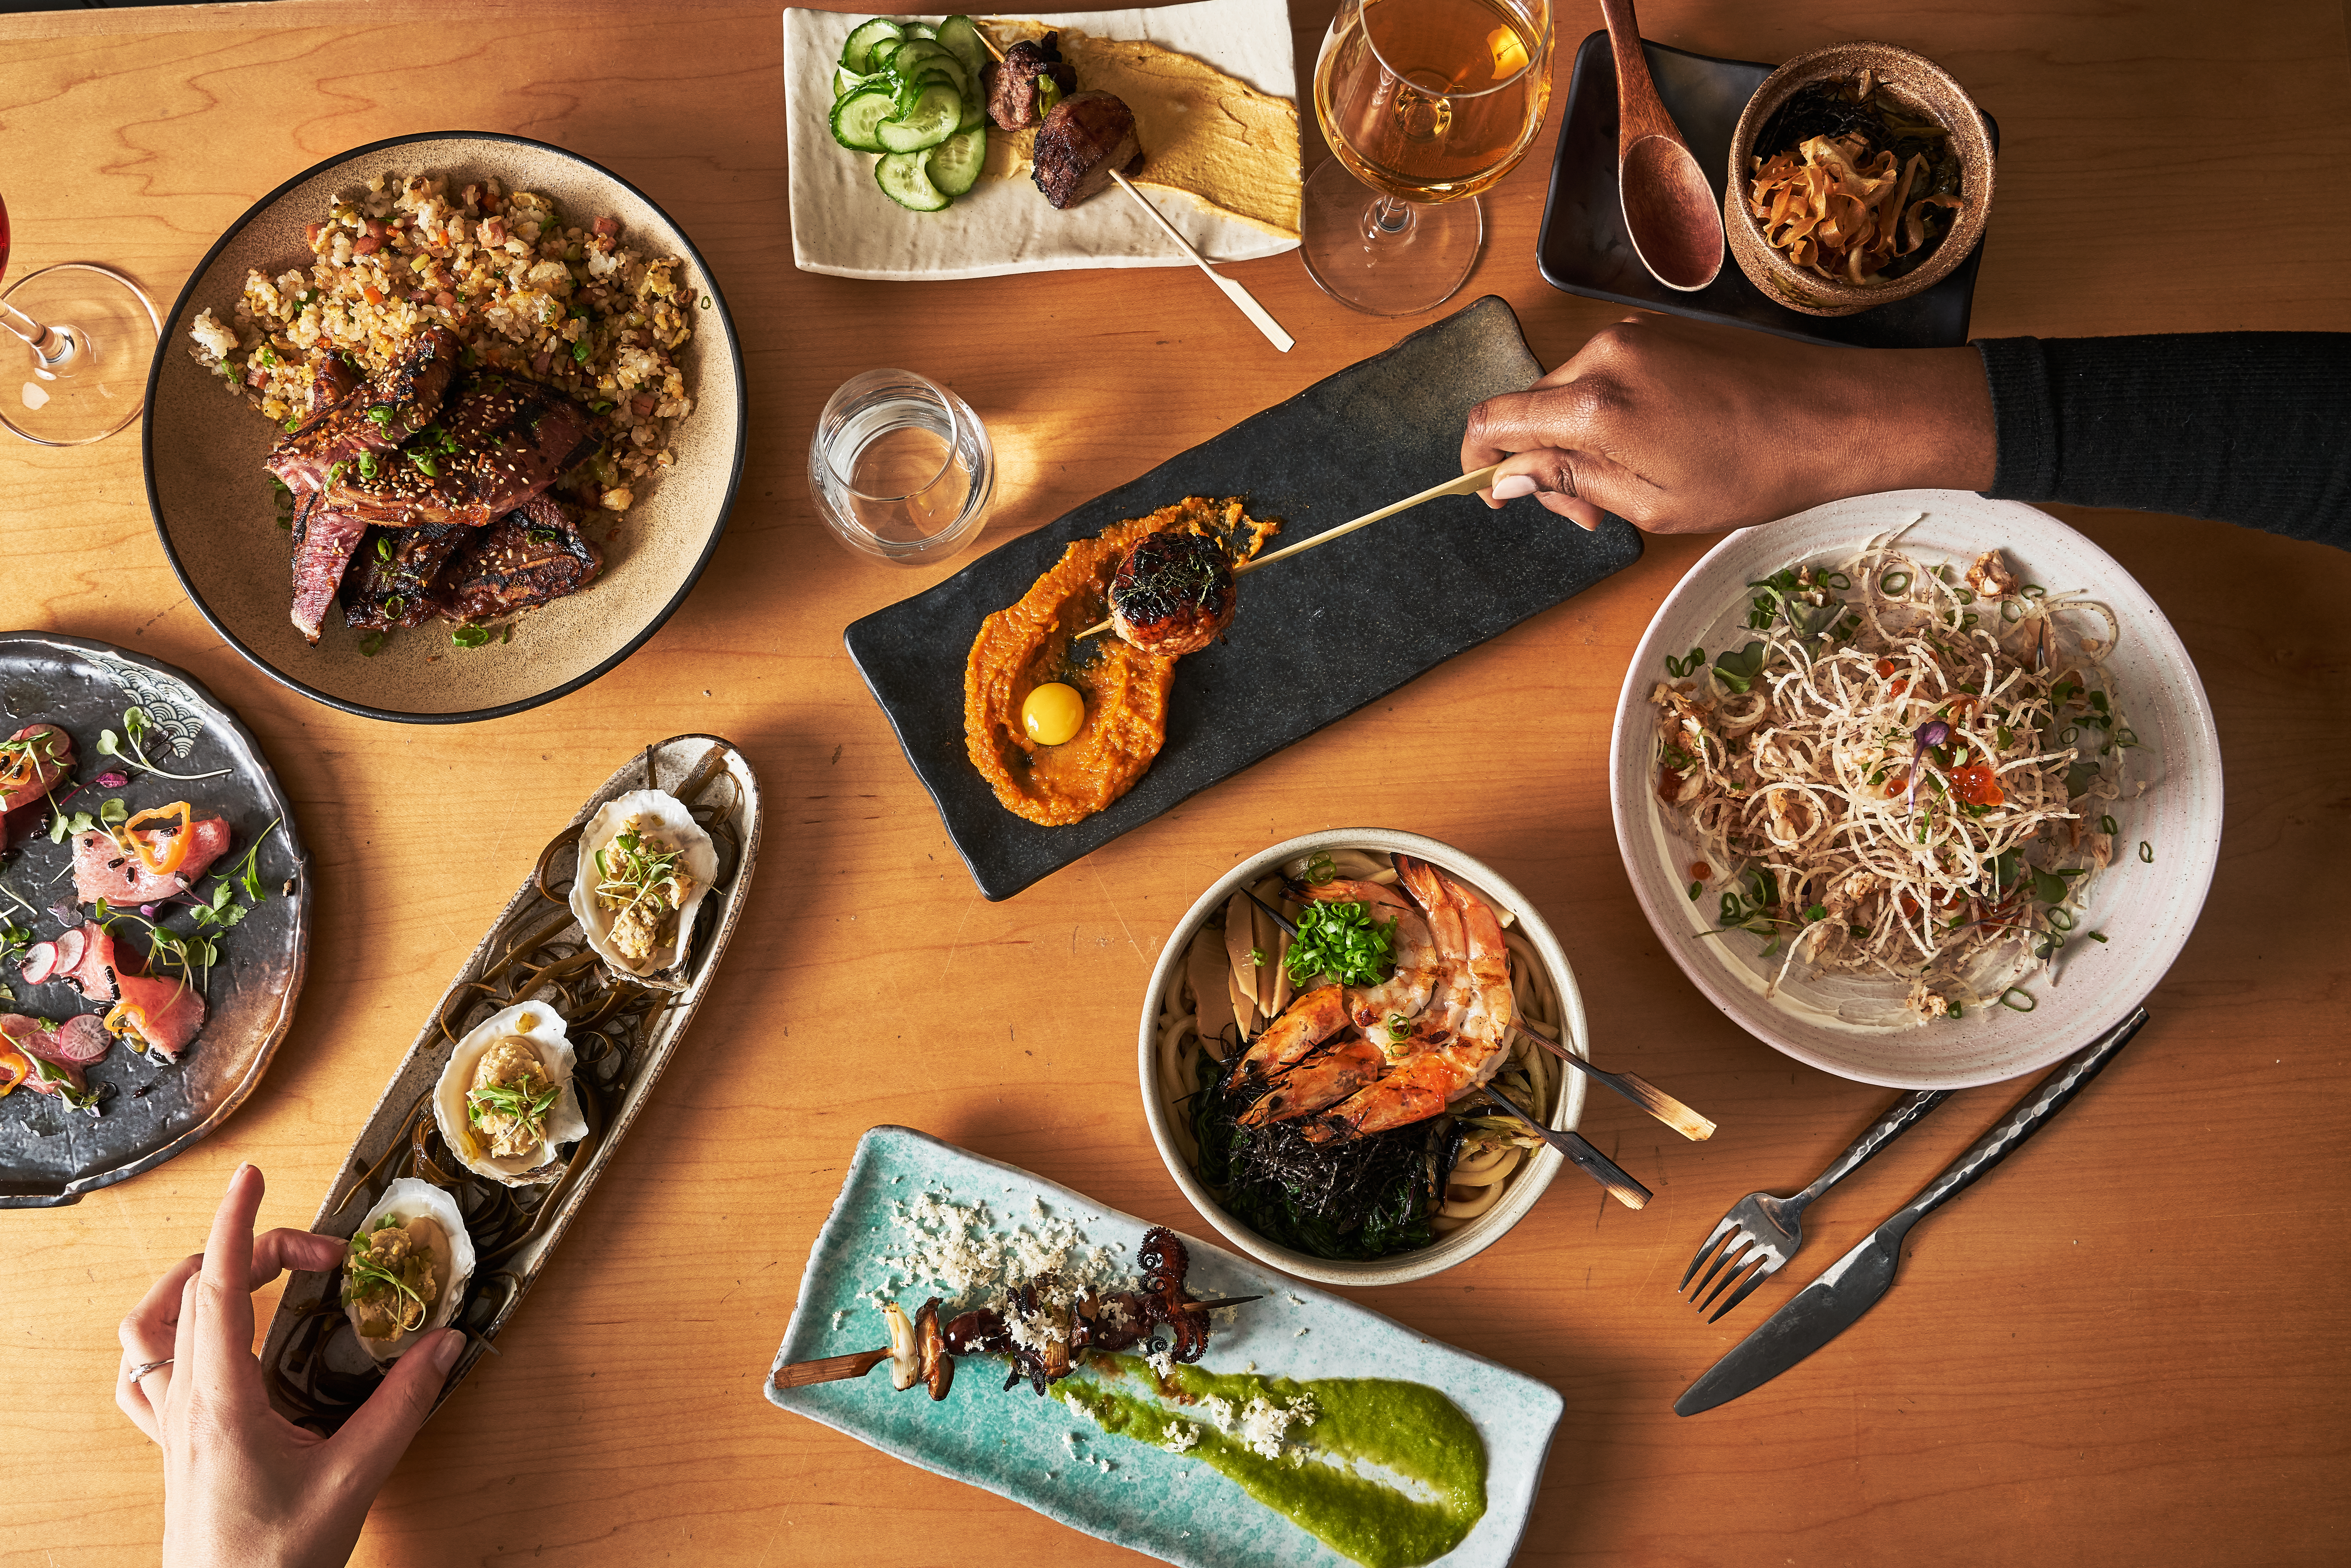 An aerial view of a spread of small plates topped with Asian-inspired fare over a wooden table